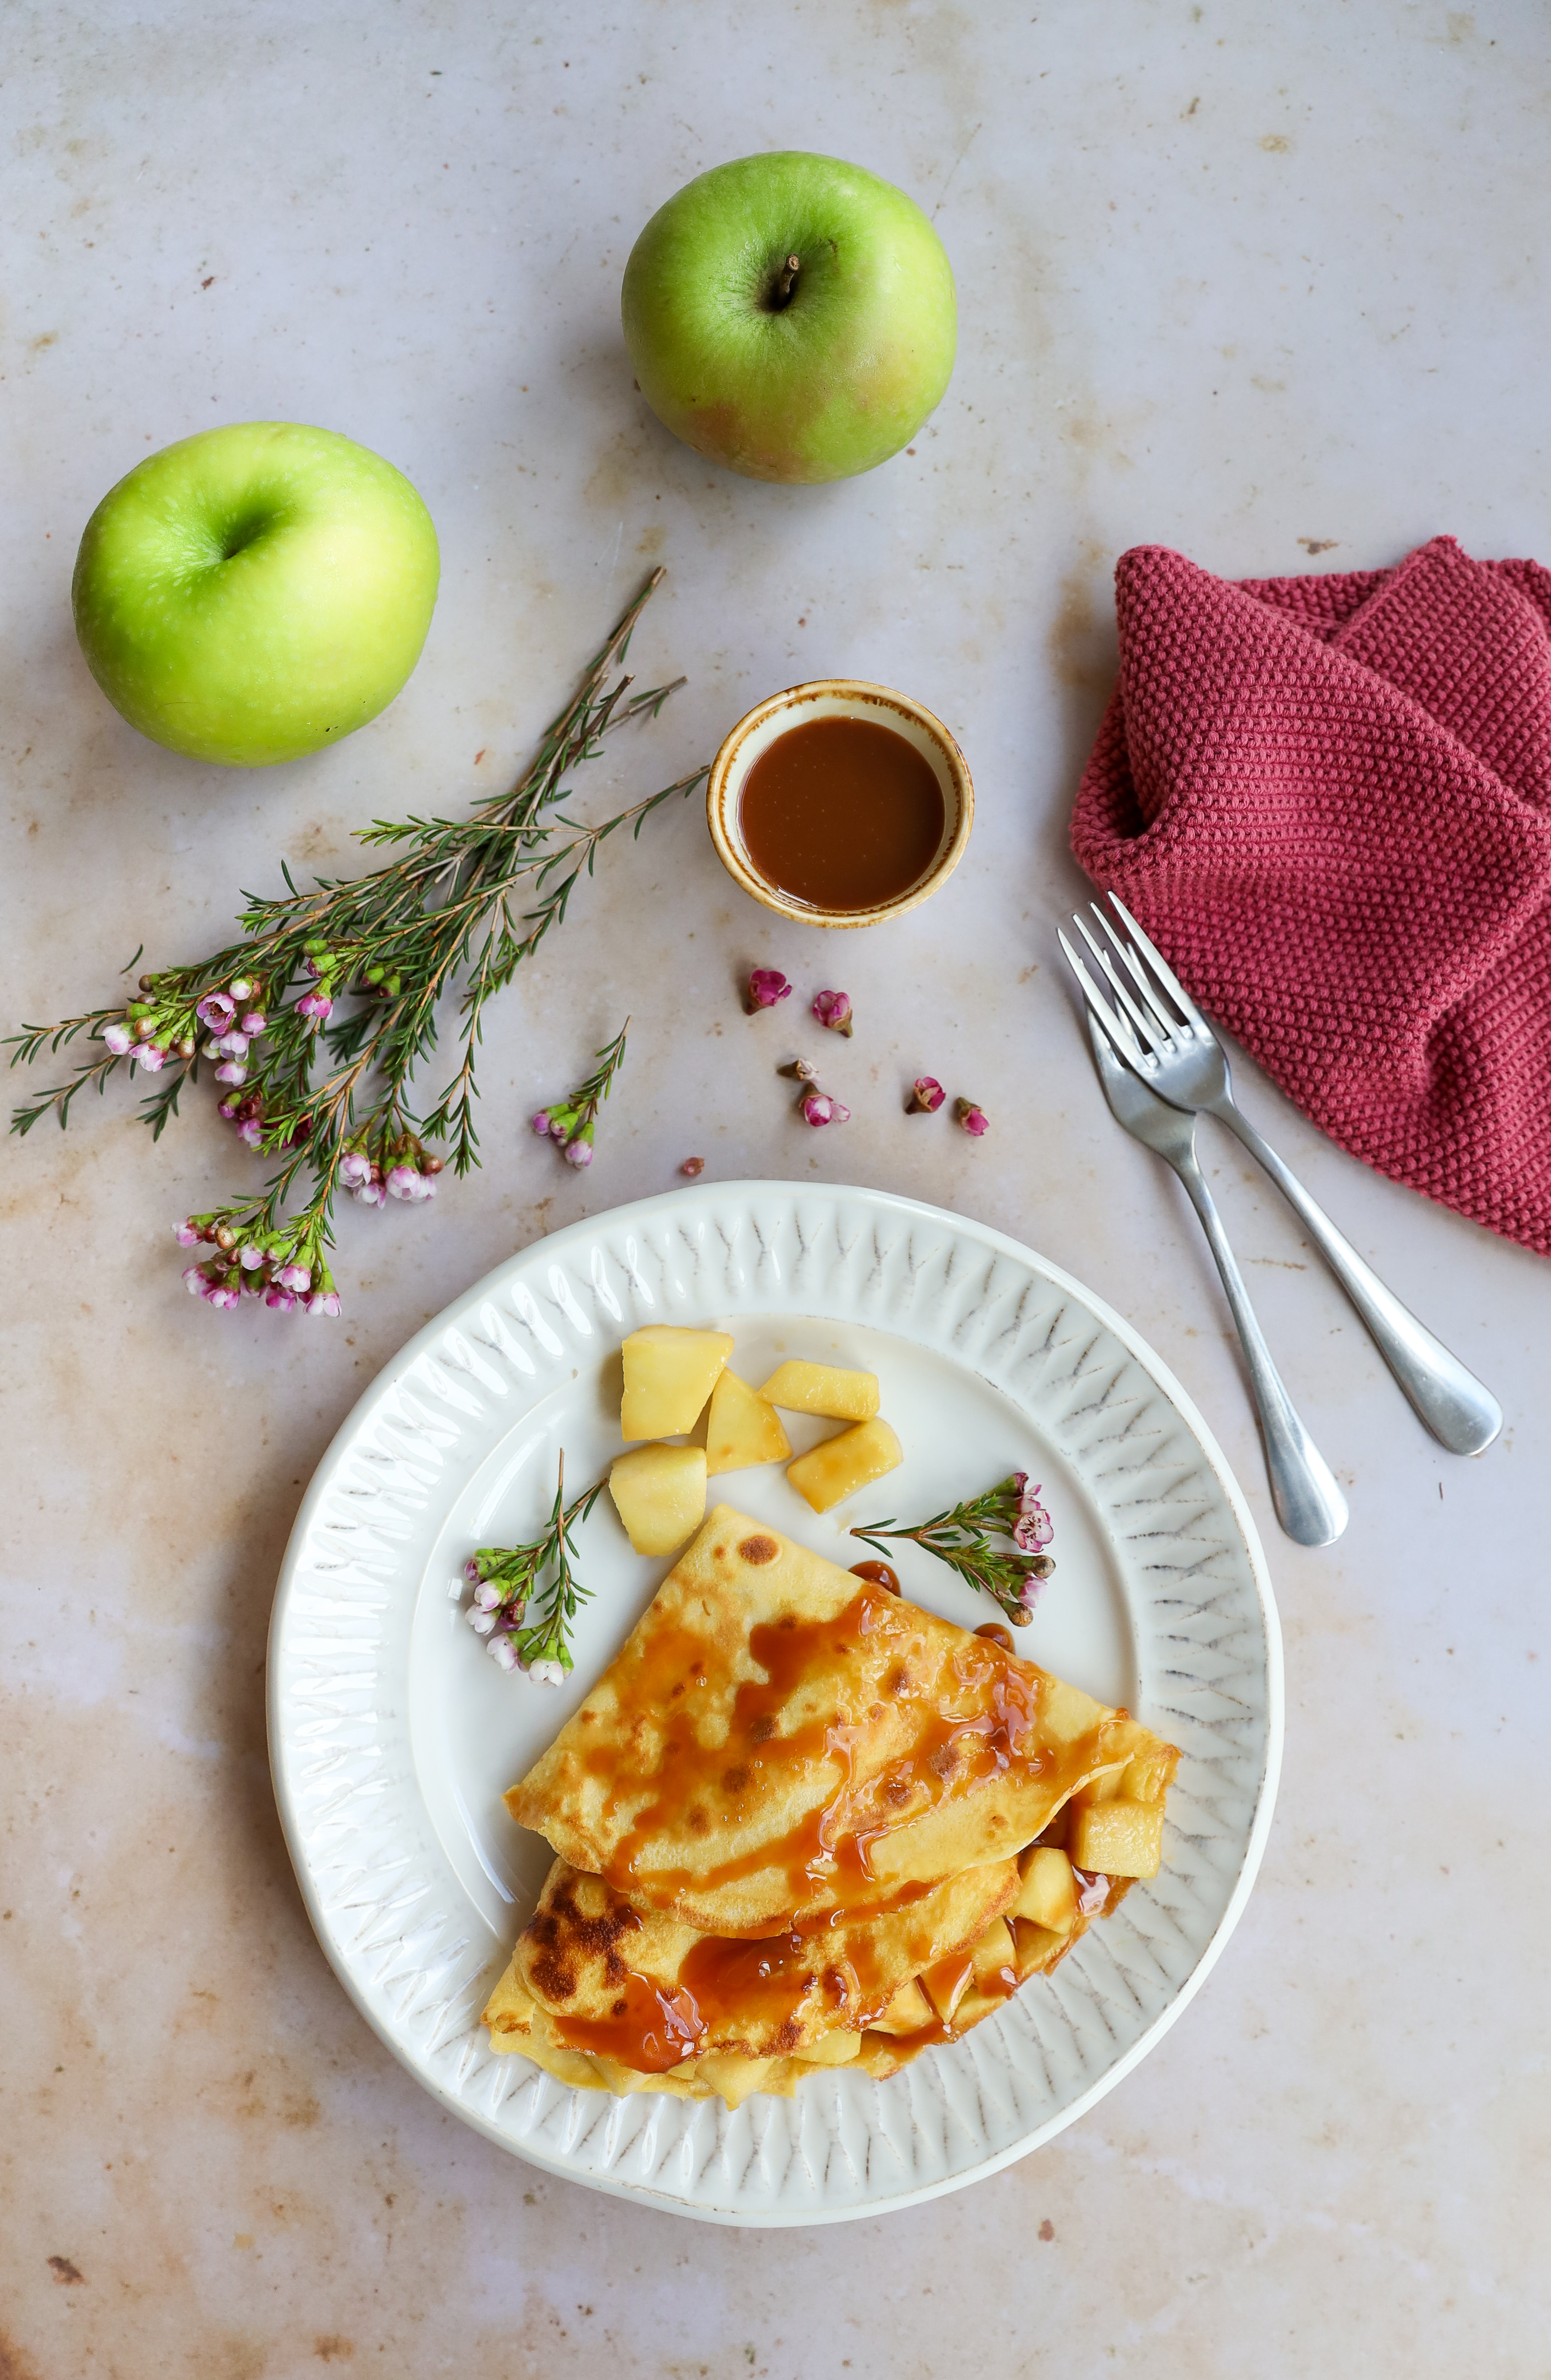 crêpes with apples and toffee